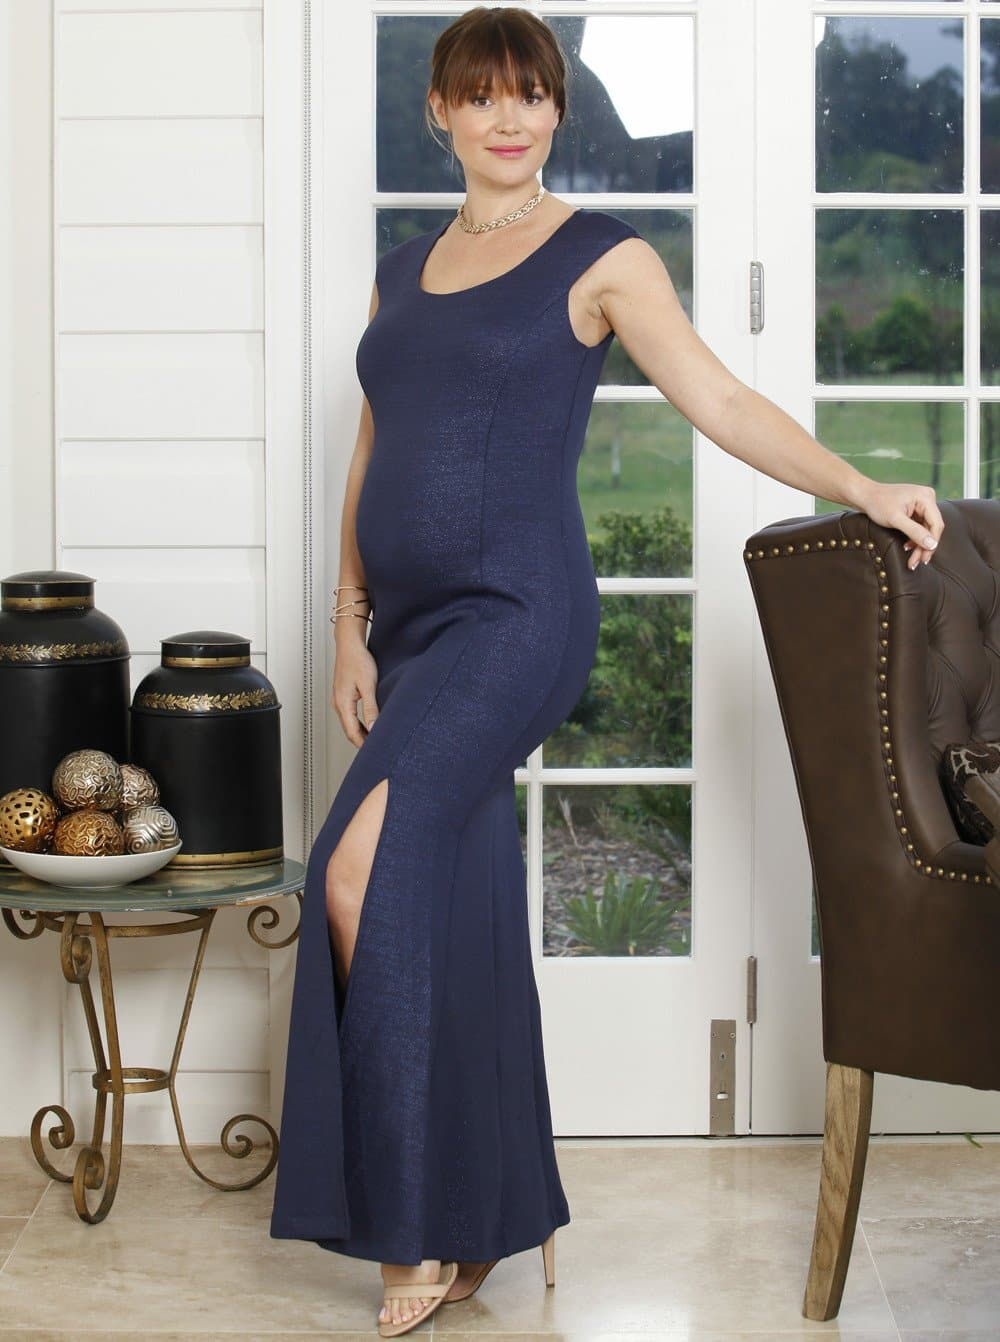 Dress To Impress Formal Maxi Party Glamour Formal Gown - Navy Blue - Angel Maternity - Maternity clothes - shop online